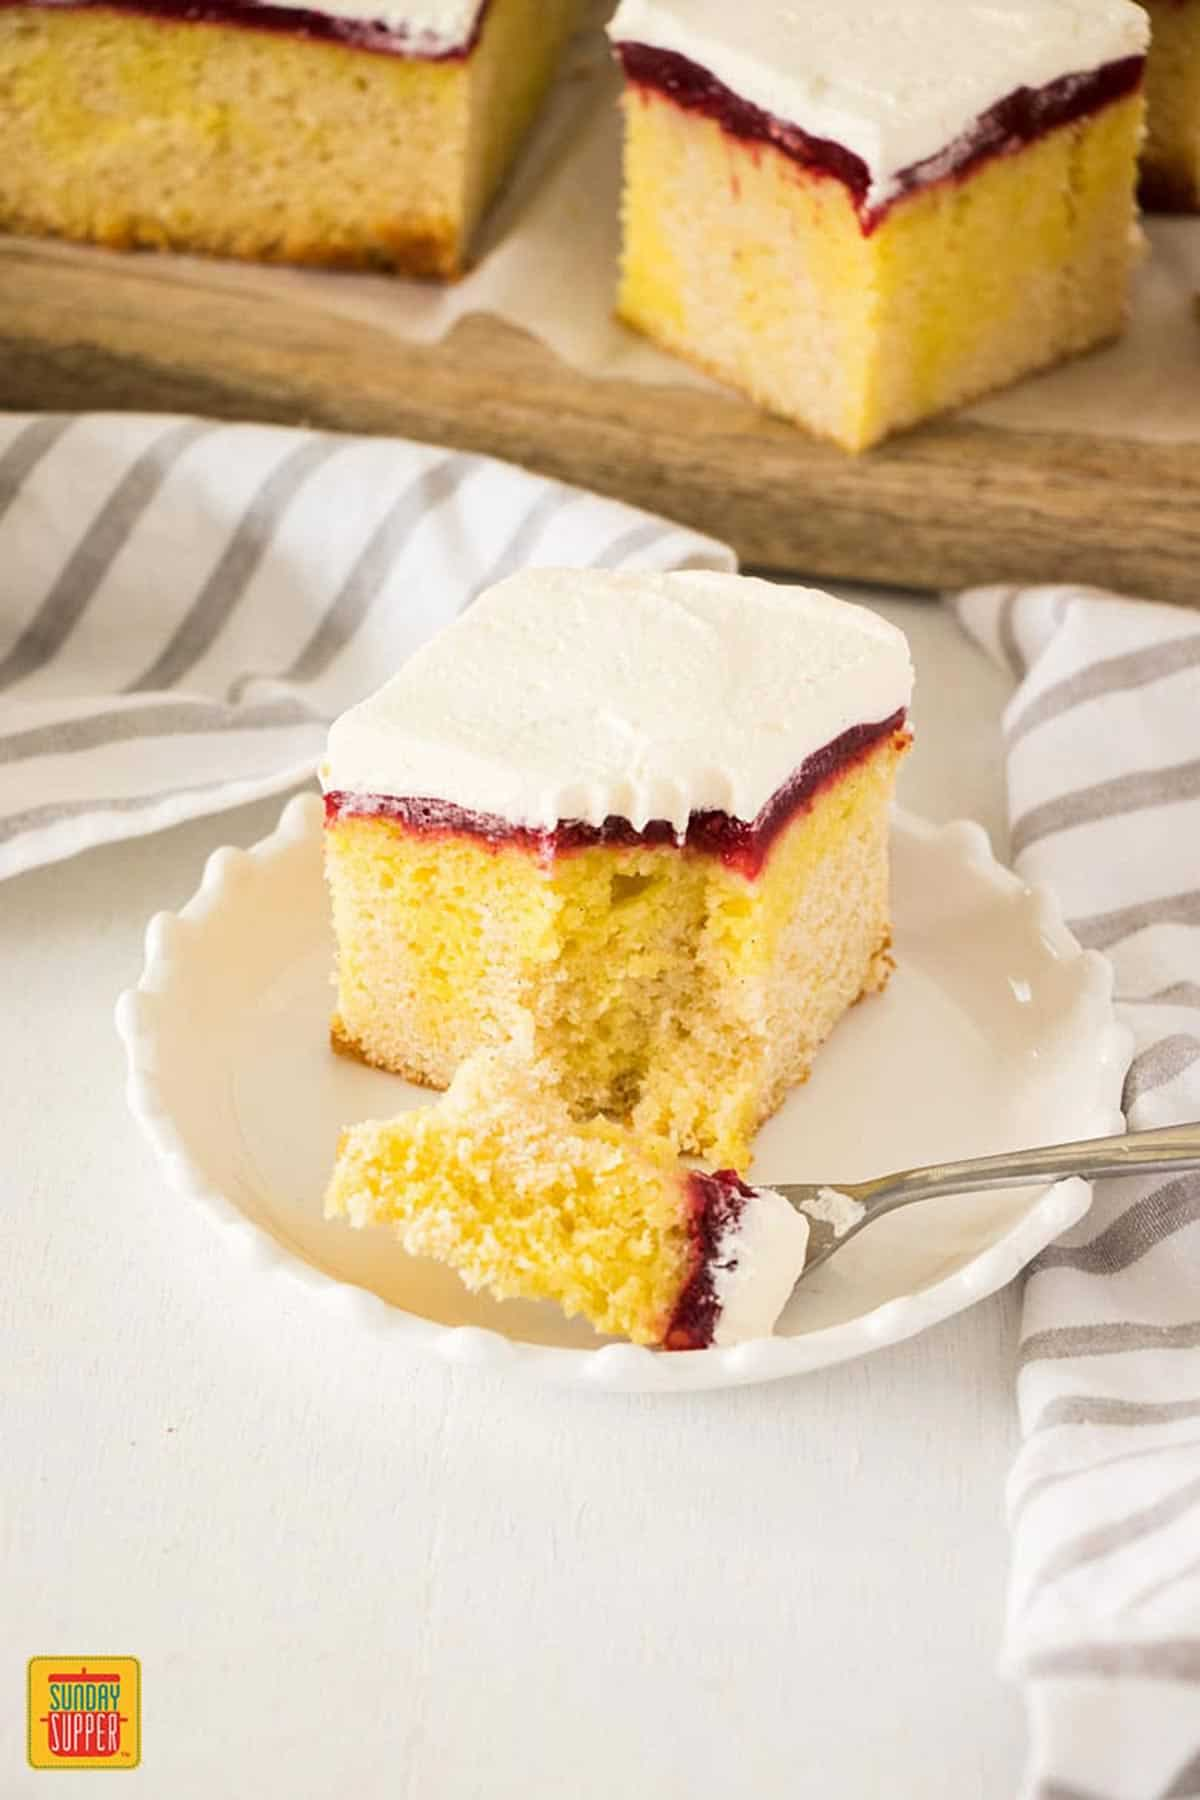 Lemon jello poke cake on a white plate with a slice taken out and a fork on the plate